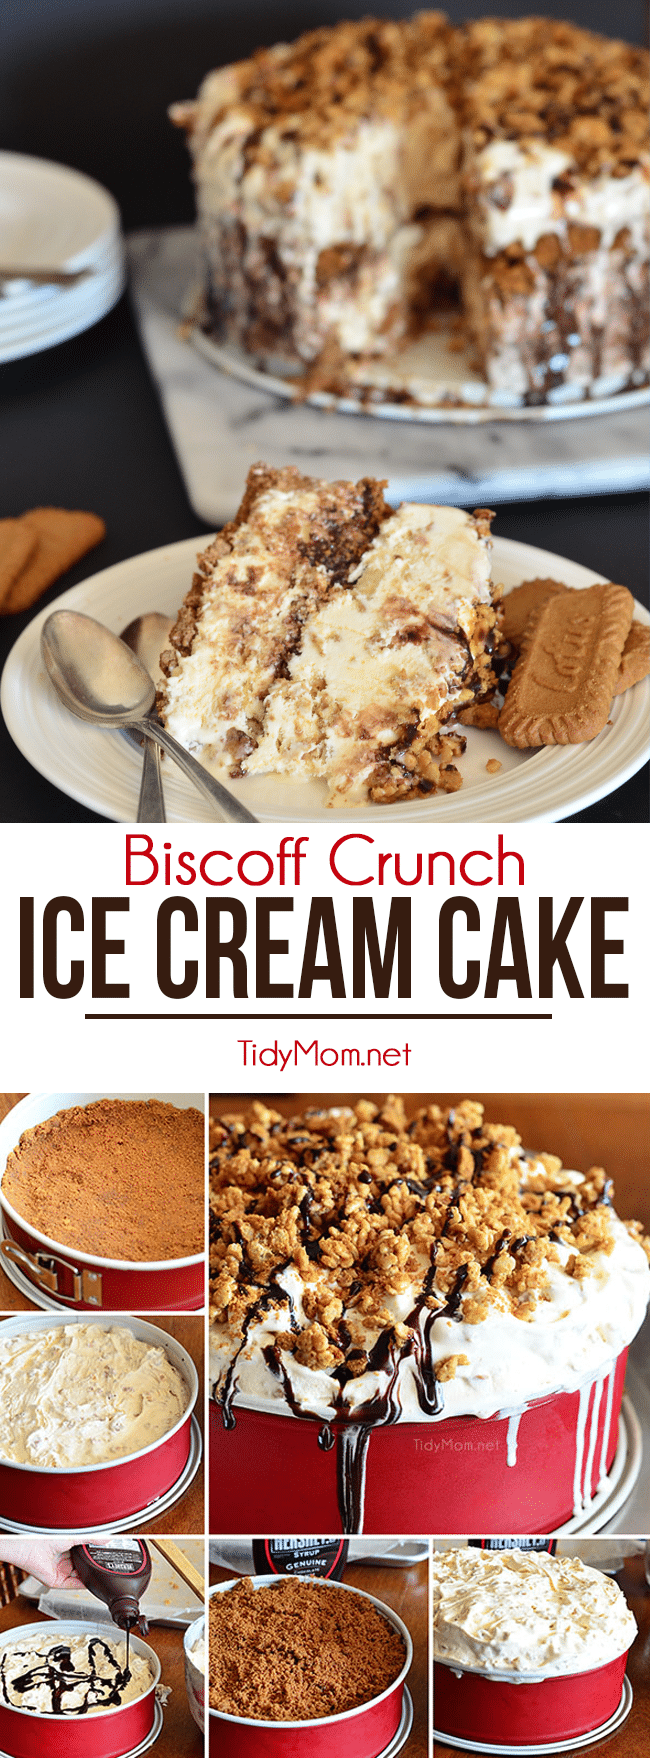 This easy ice cream cake is made with Biscoff cookies, vanilla ice cream, Biscoff Spread, and rice cereal.  BISCOFF ICE CREAM CRUNCH CAKE recipe at TidyMom.net